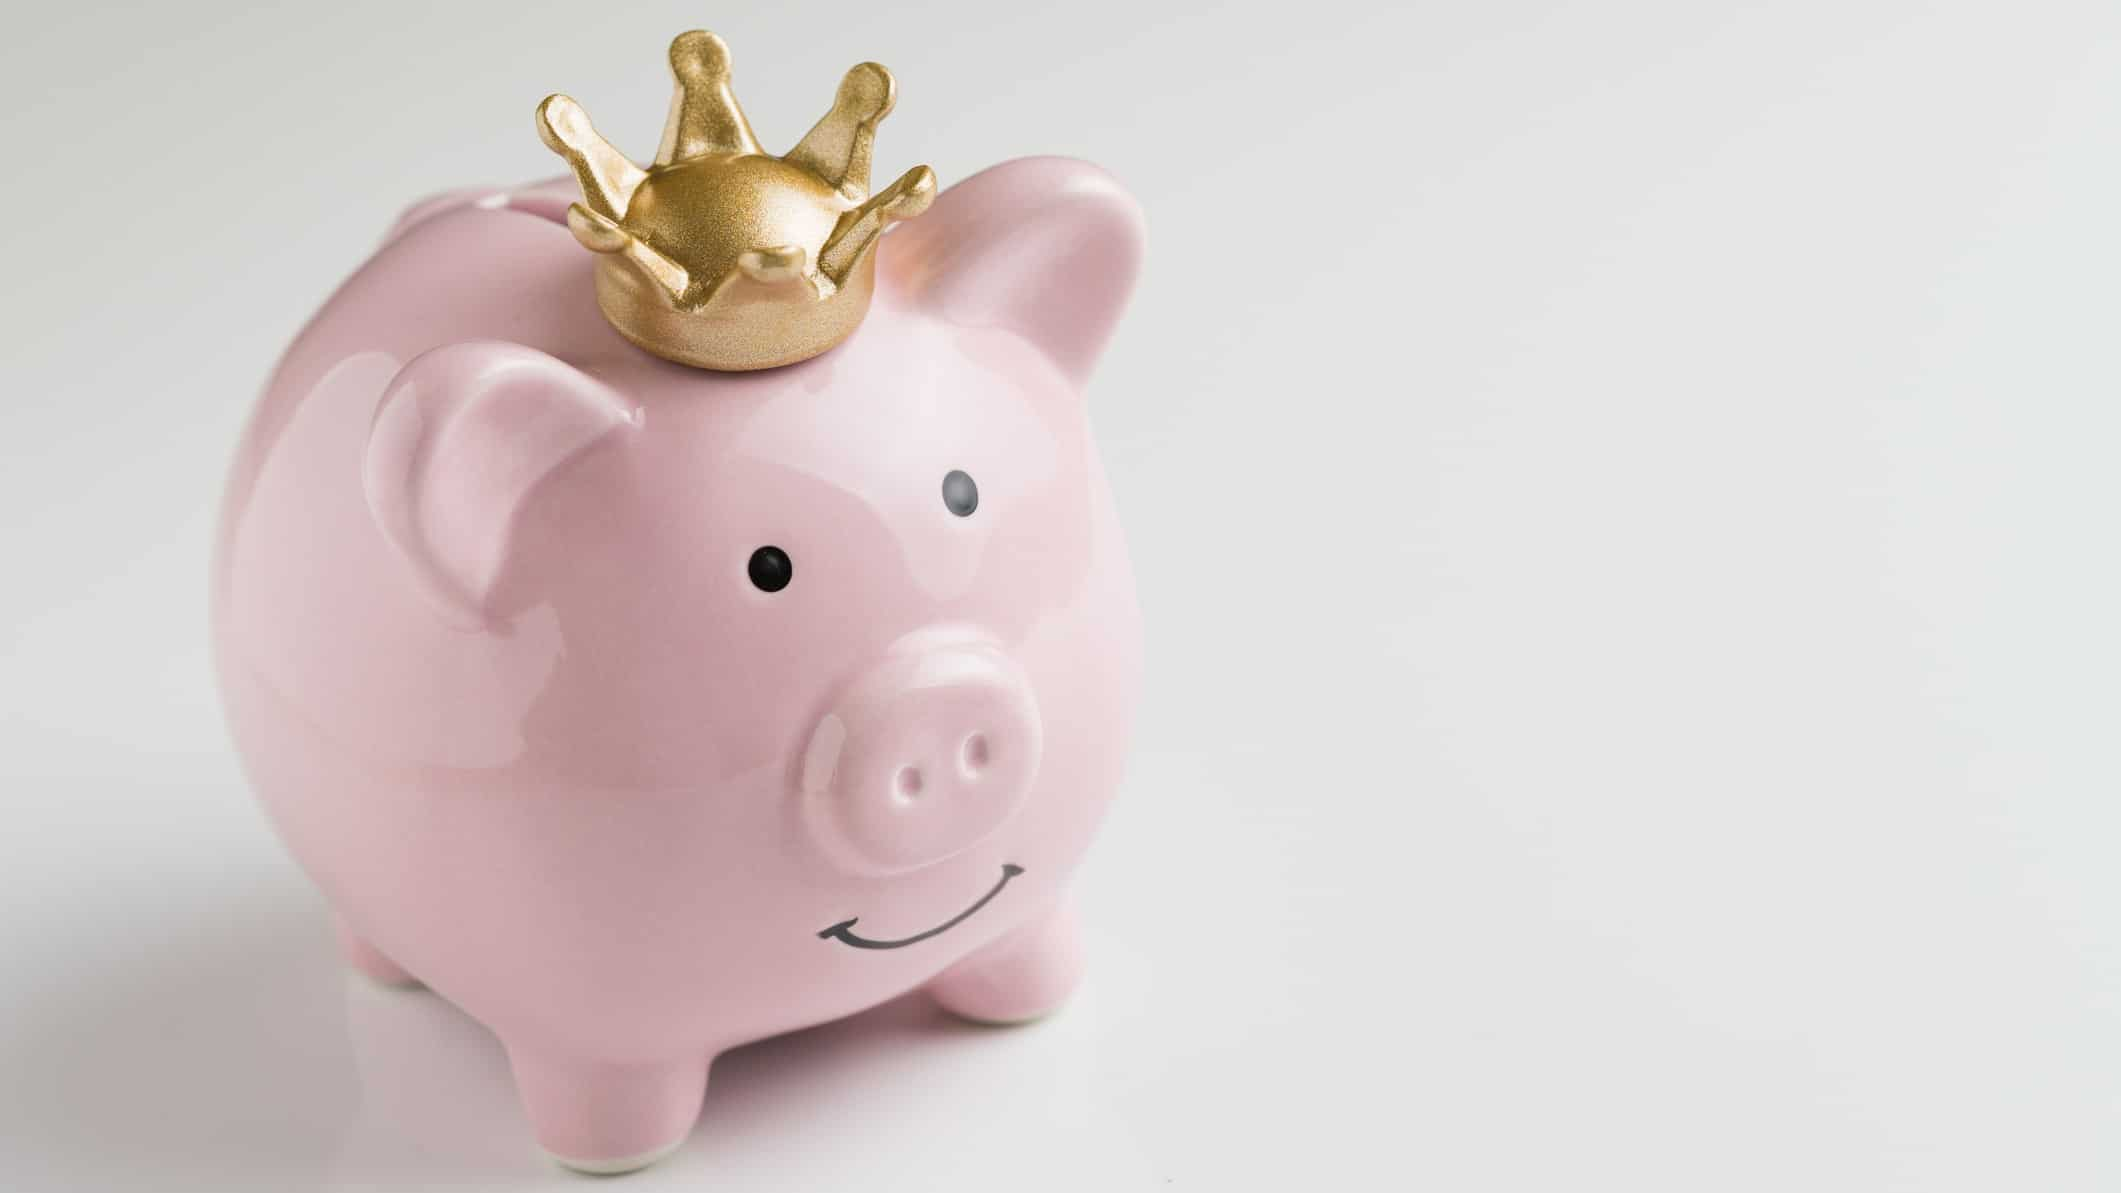 piggy bank wearing crown representing asx share dividend king